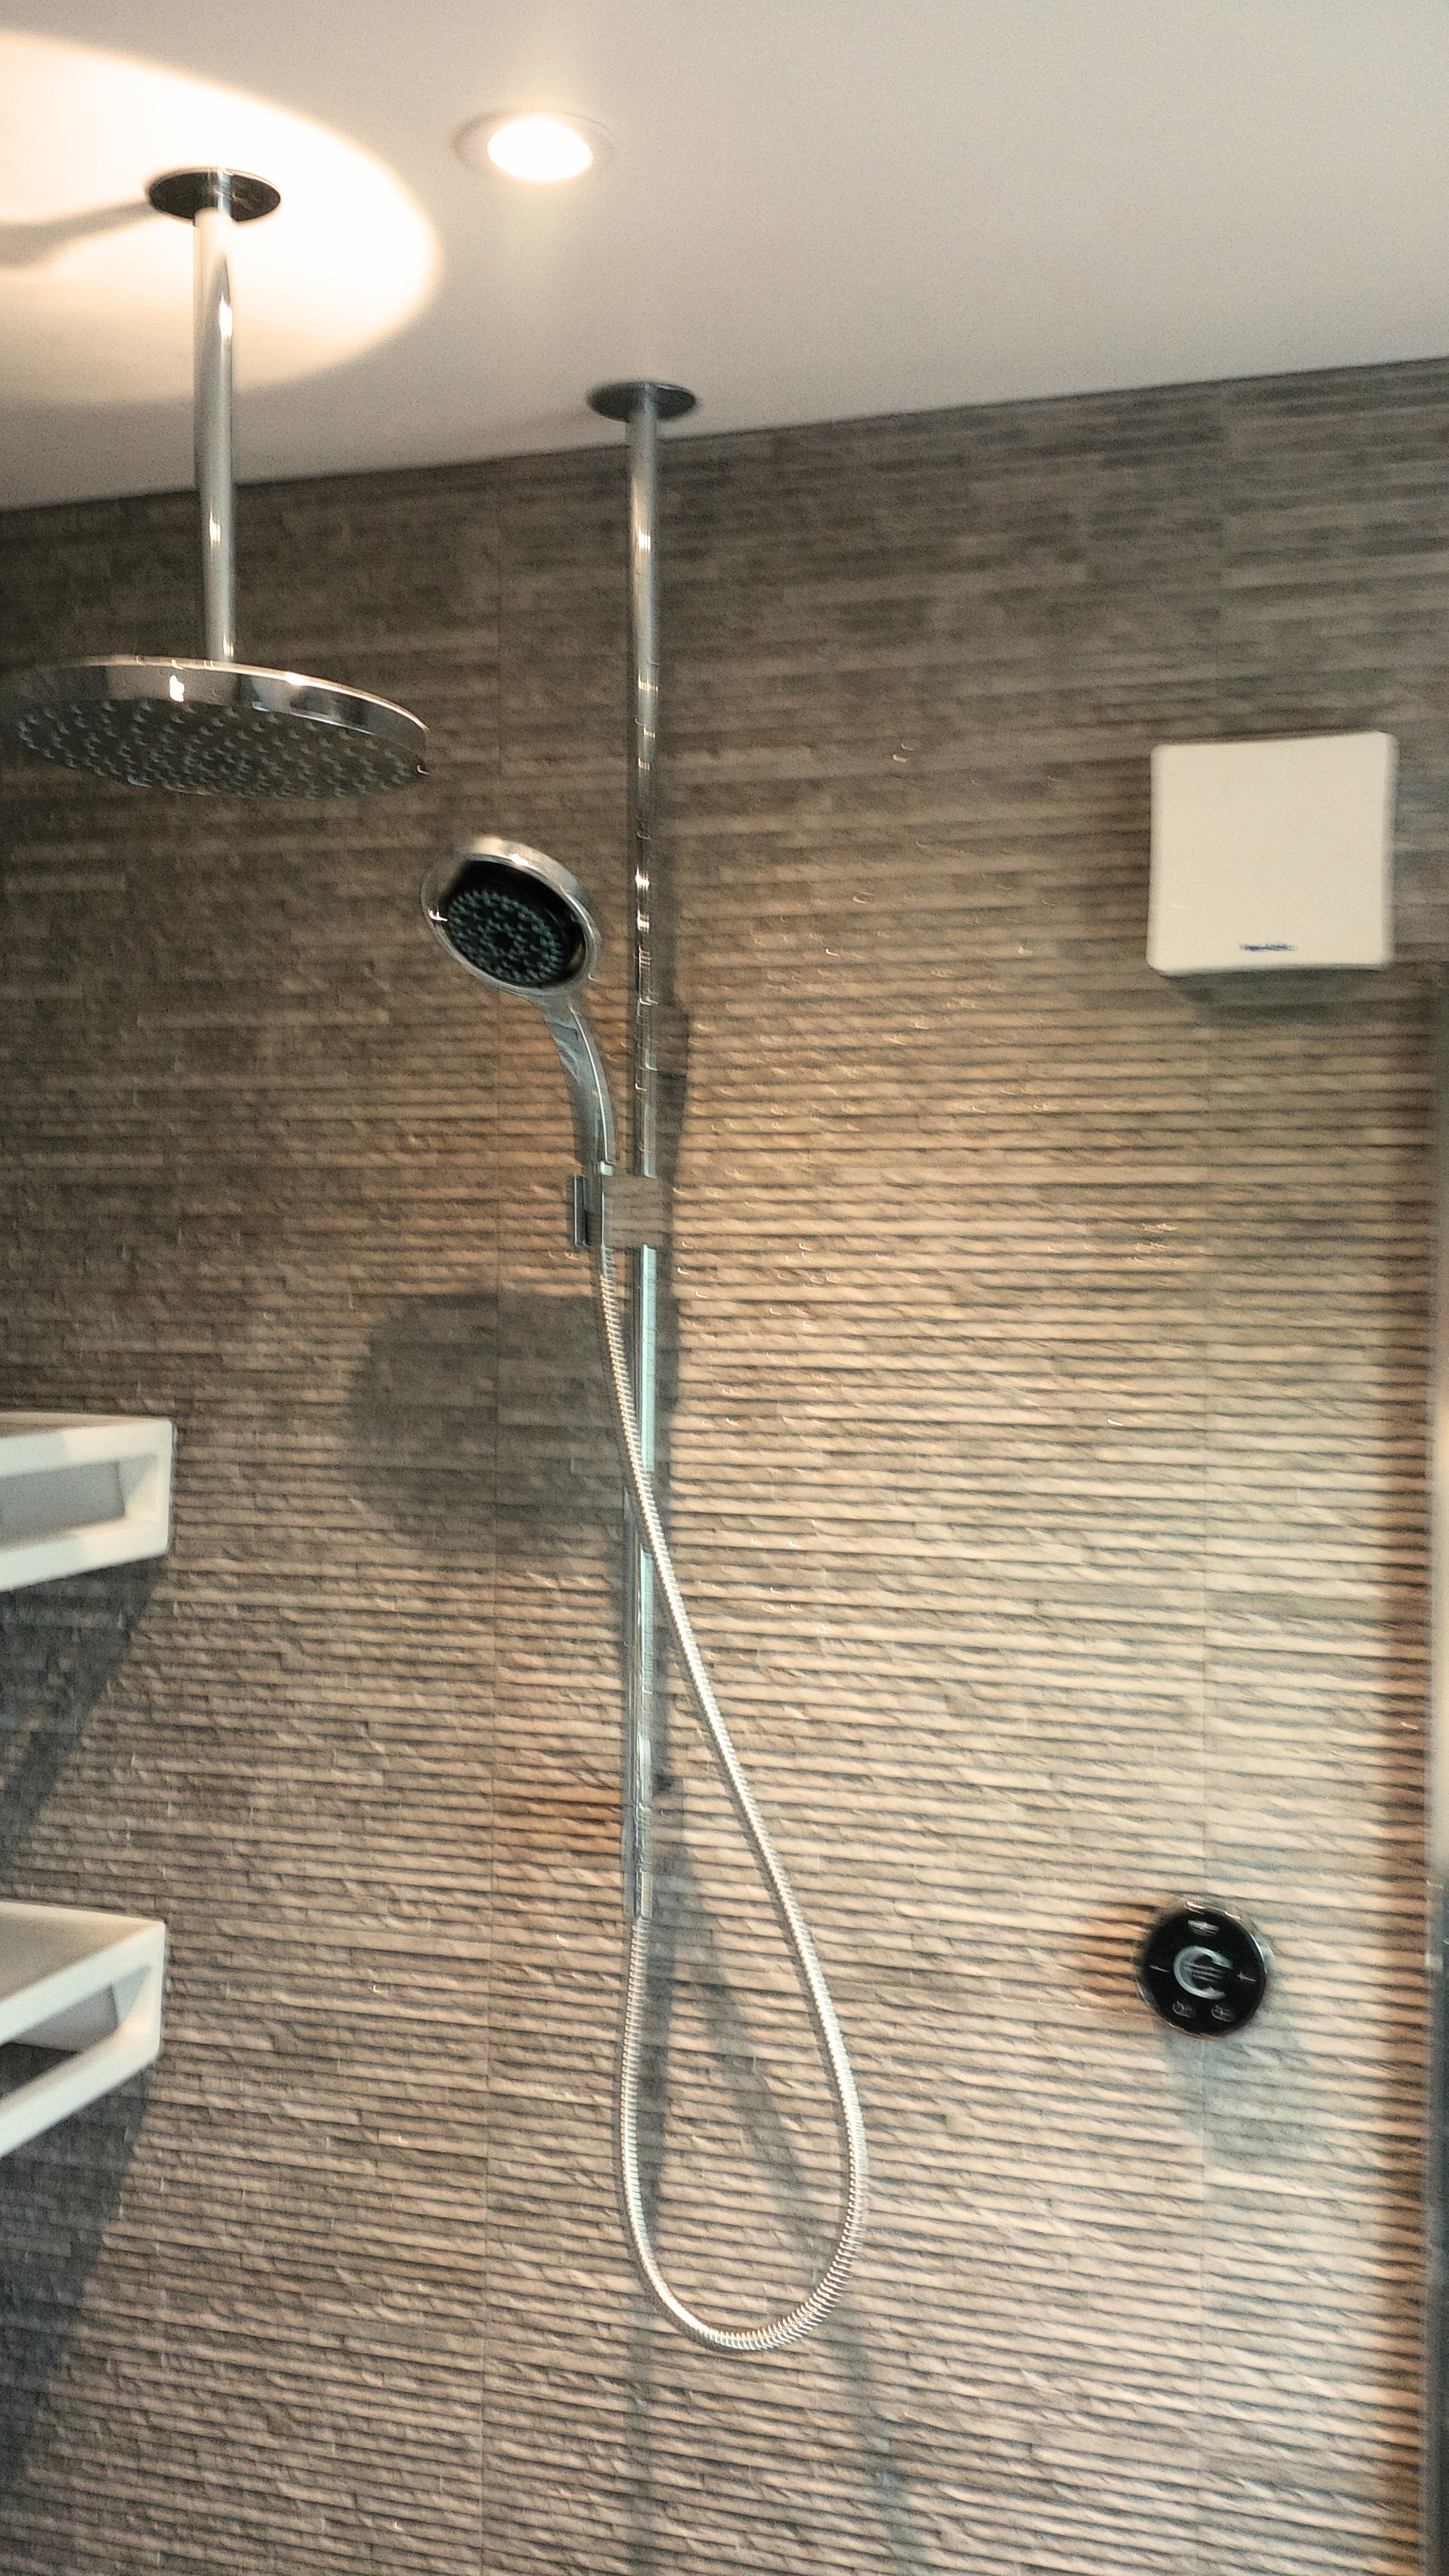 Mira Digital Electric Shower London BathroomsLondon